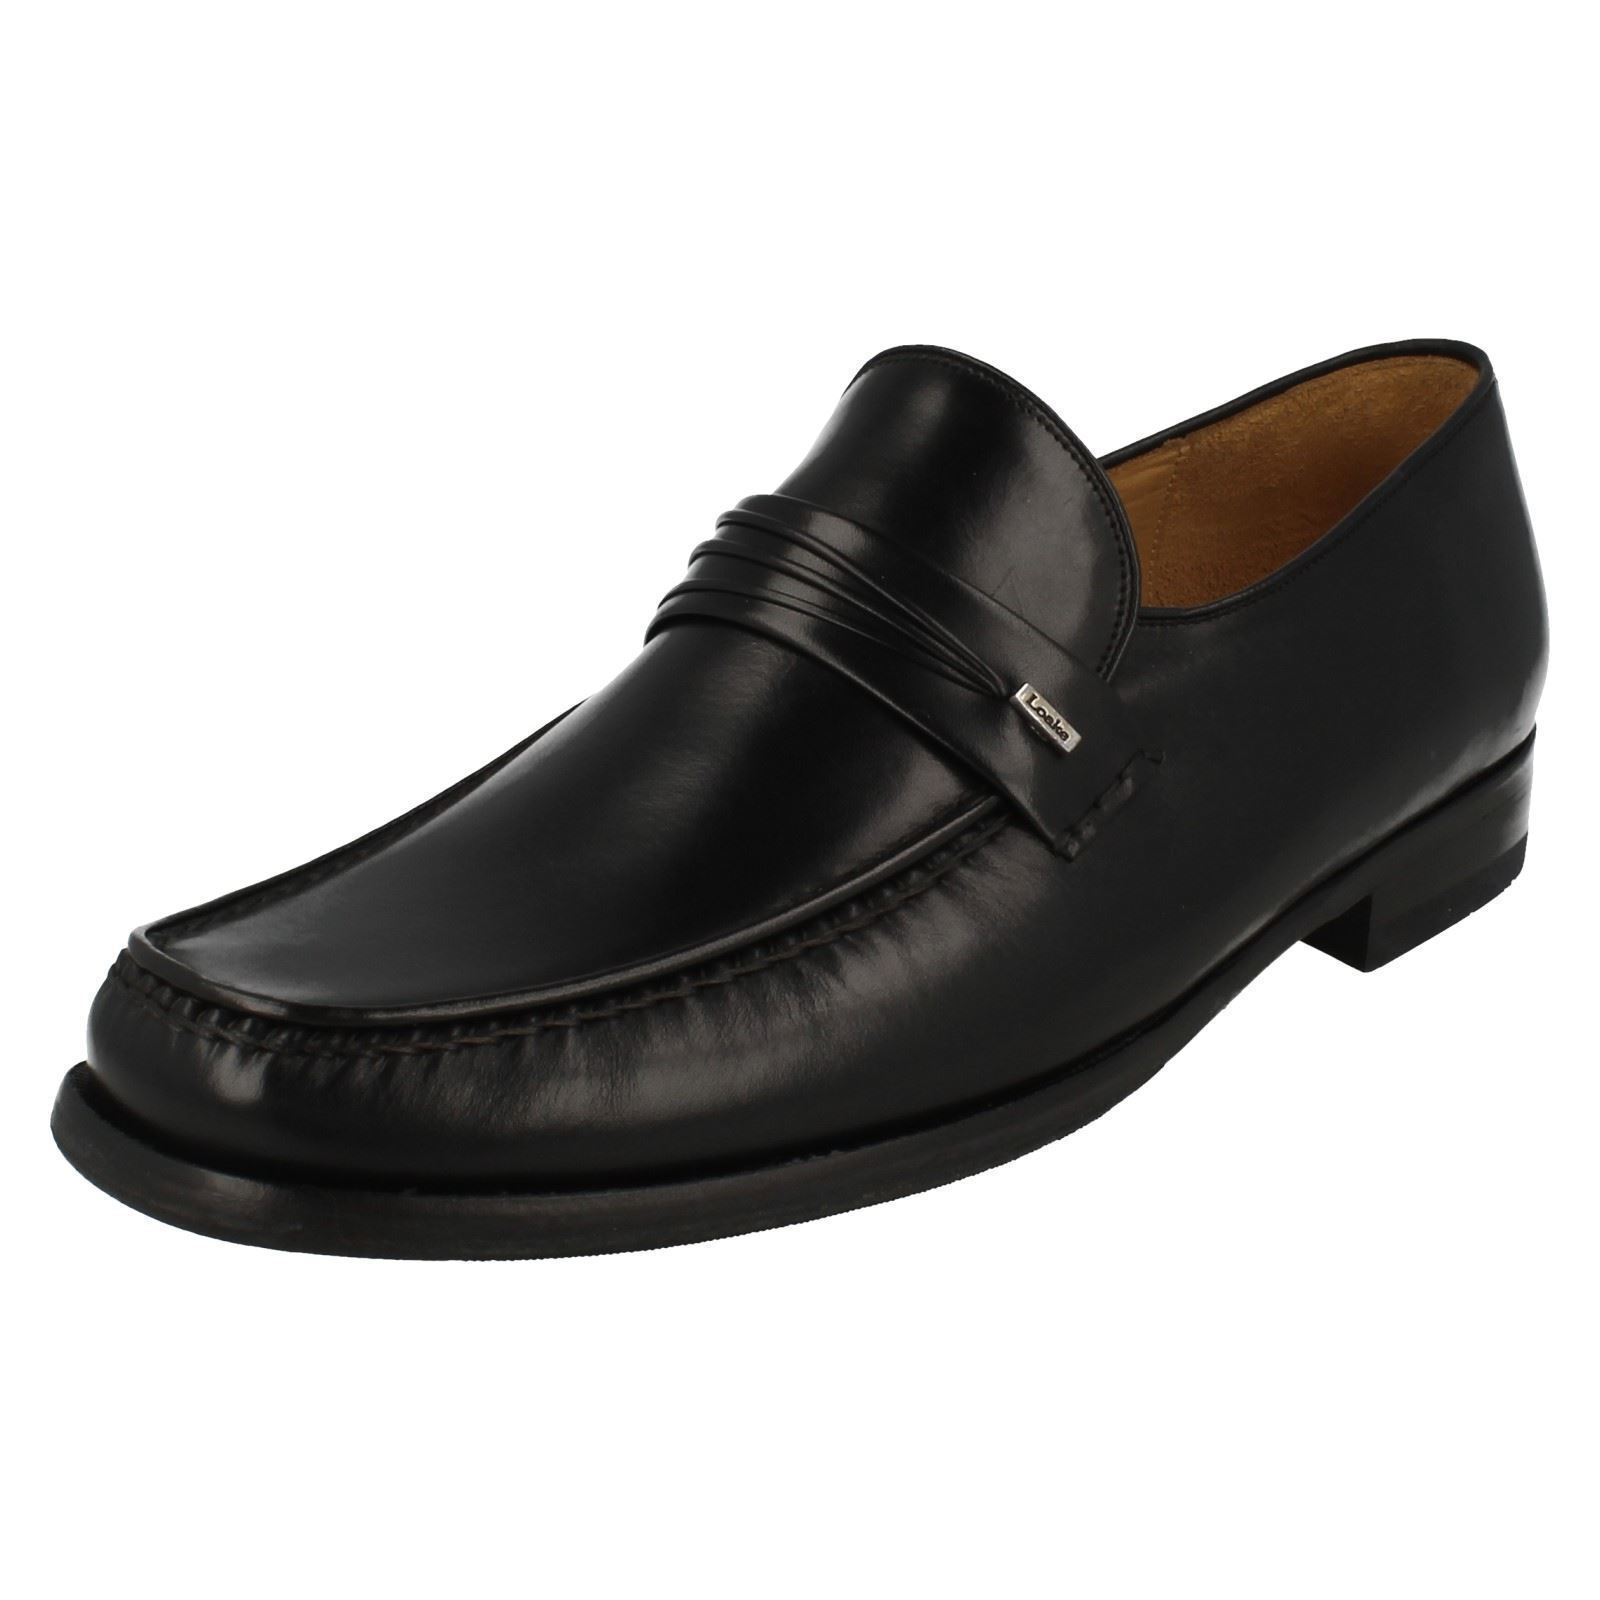 MENS LOAKE nero Leather  SMART FORMAL MOCCASIN SLIP SU SHOHE PALERMO 2  fino al 65% di sconto